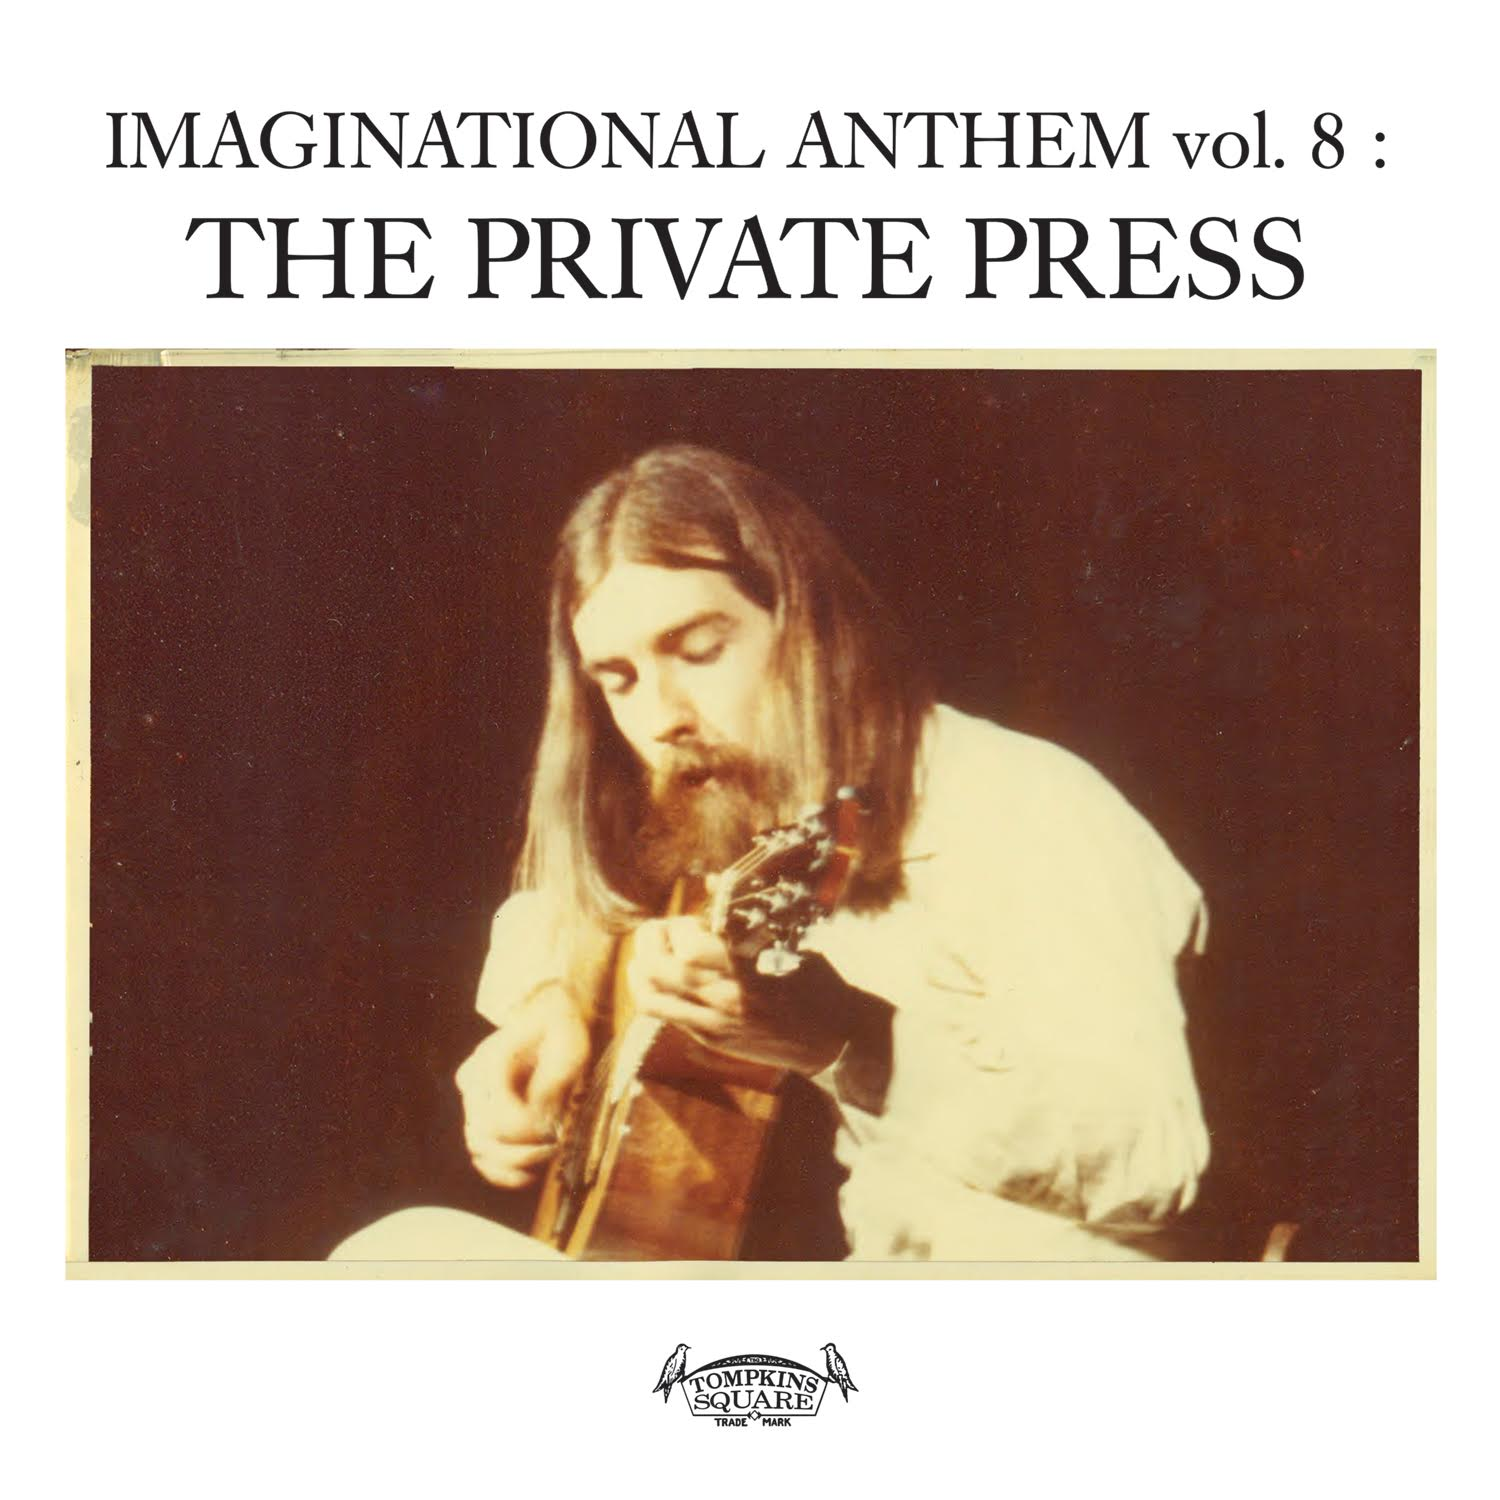 Imaginational Anthem Vol. 8 : The Private Press